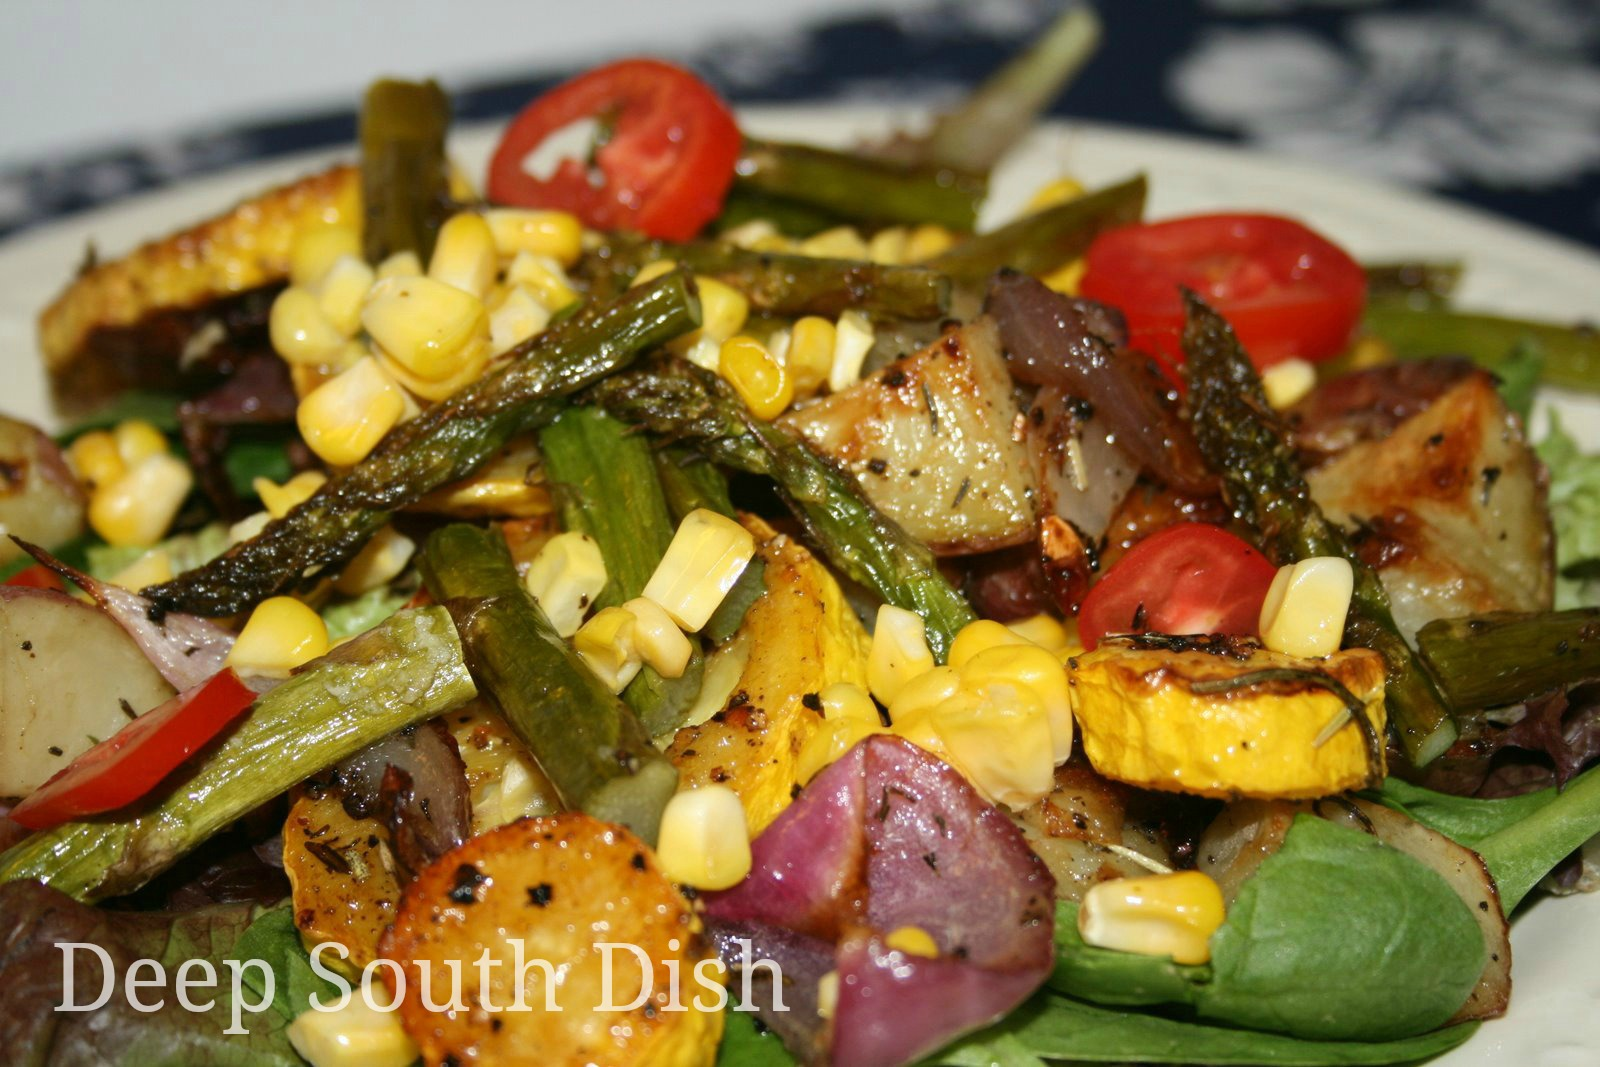 Deep south dish grilled or roasted vegetable spinach salad with warm bacon dressing - Make perfect grilled vegetables ...